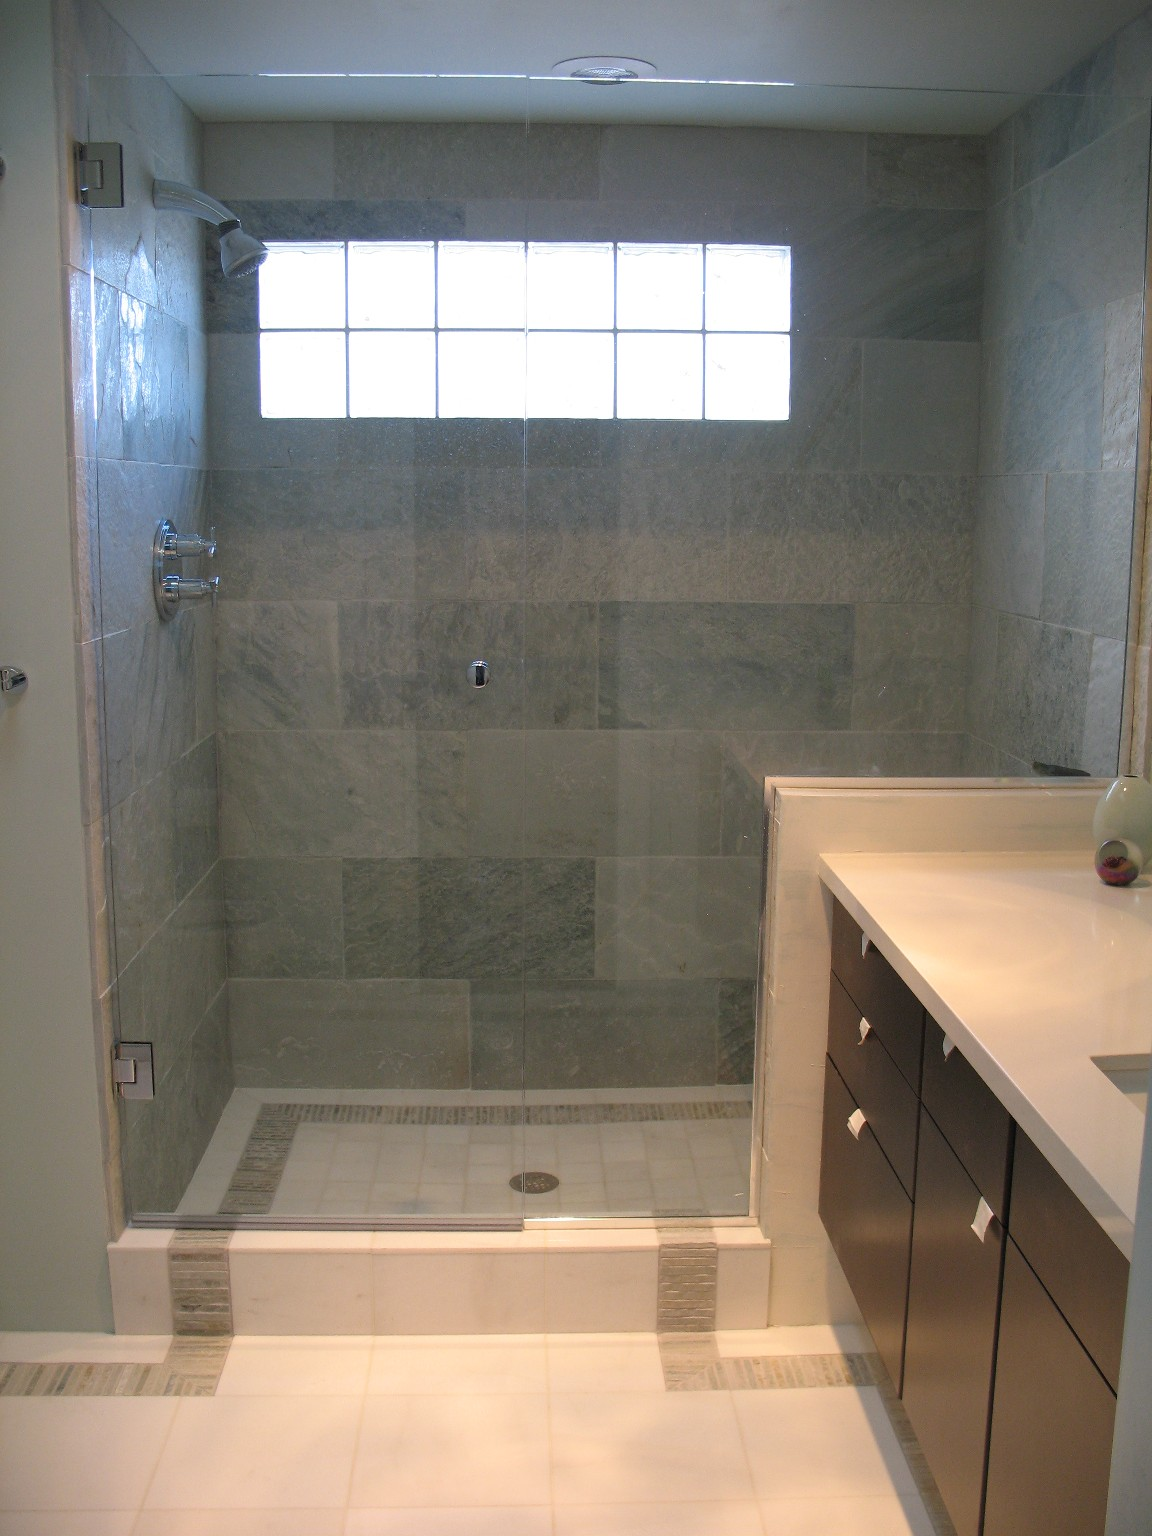 33 amazing ideas and pictures of modern bathroom shower for Bathroom tile designs ideas